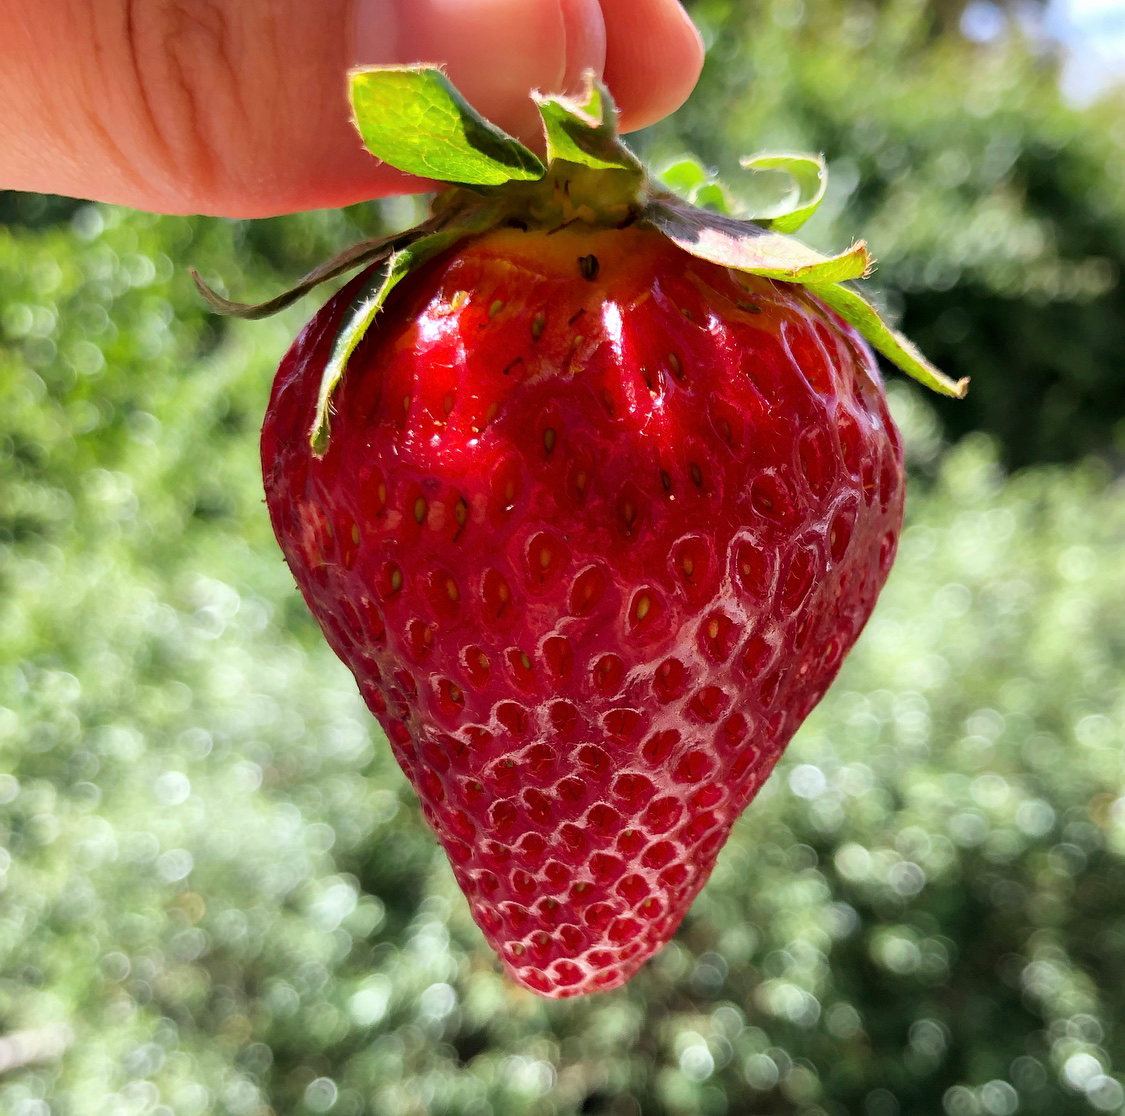 Local, organic strawberry from Coke Farms